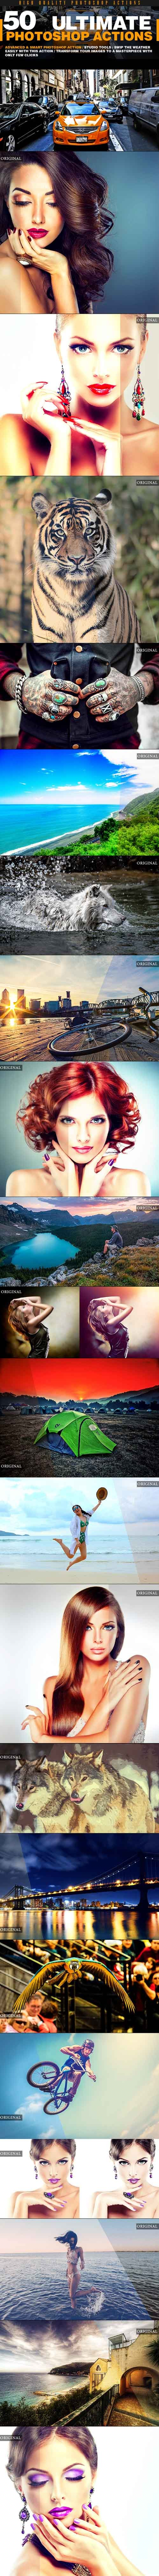 Graphicriver - 50 PRO Photo Effex 2 Actions 20221117